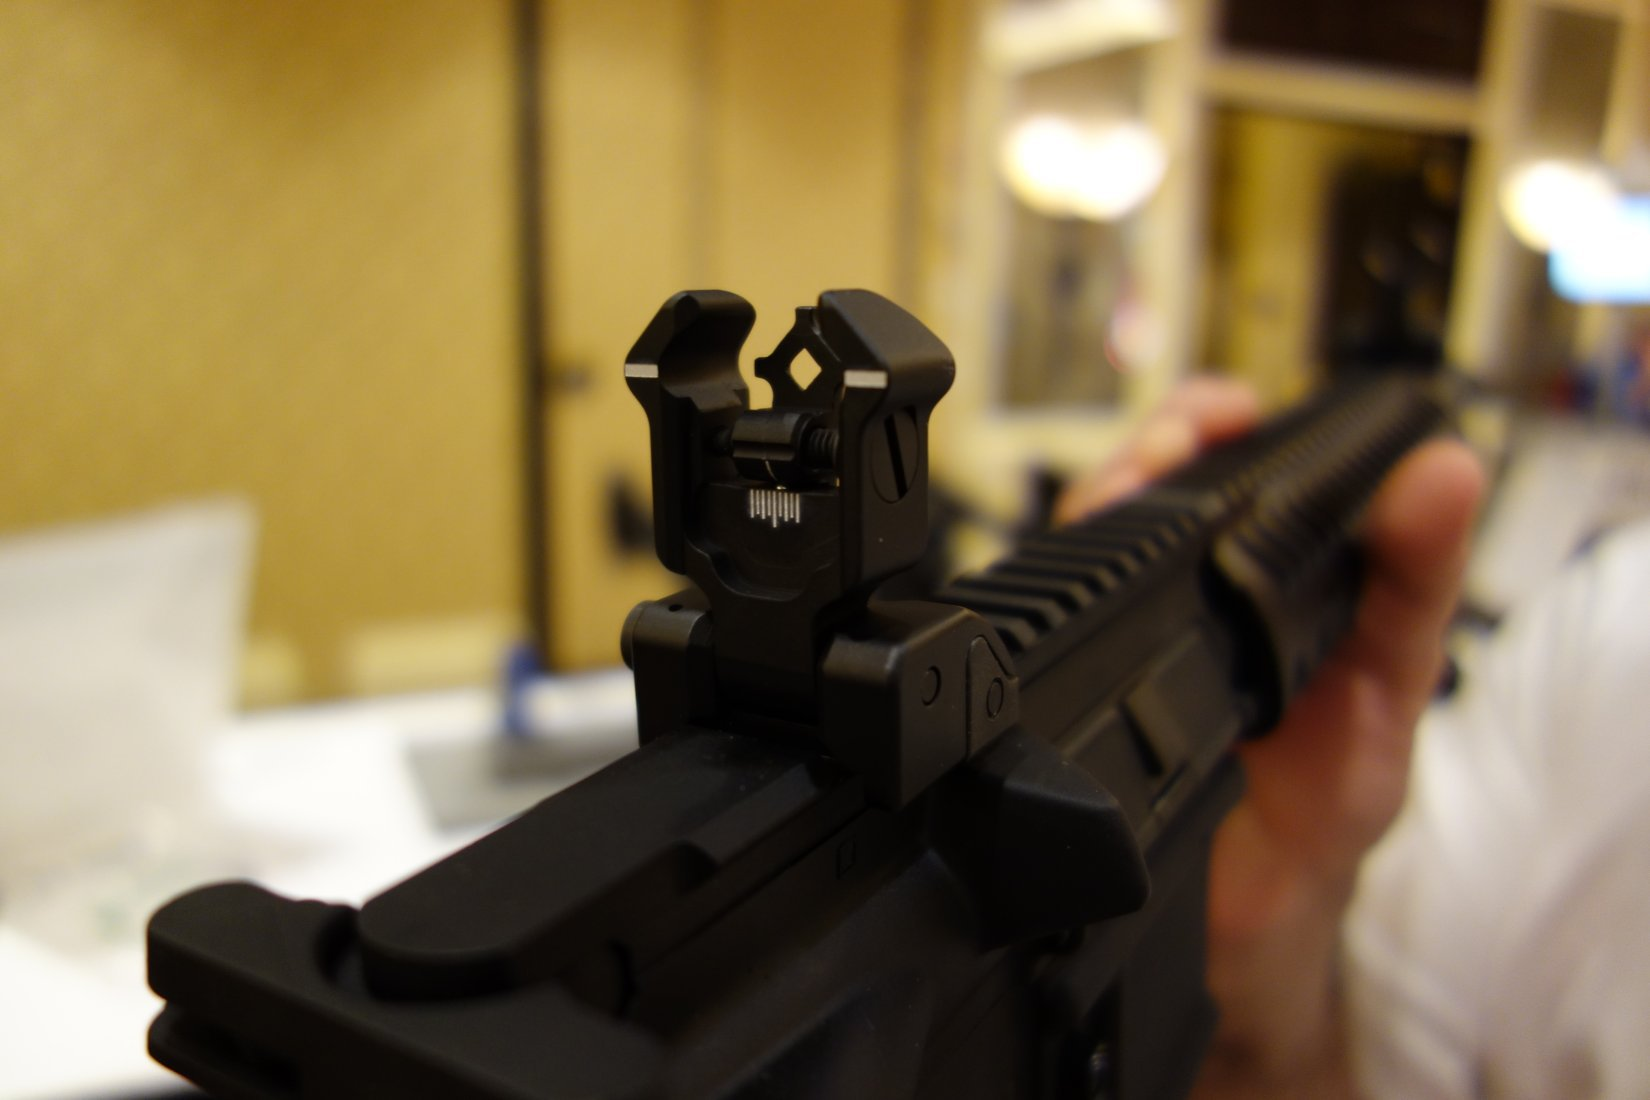 Diamondhead USA Diamond Generation 2 Gen 2 Flip Up Front and Rear Sights BUIS Back Up Iron Sights for Tactical AR 15 Rifle Carbine SBR Sub Carbines SHOT Show 2013 David Crane DefenseReview.com DR 5 Diamondhead Diamond Generation 2 (Gen 2) Flip Up Front/Rear Sight BUIS System for AR 15 Rifle/Carbine/SBRs: Instantly Switch from CQB/CQC to Medium Range Combat Shooting Engagements! (Video!)